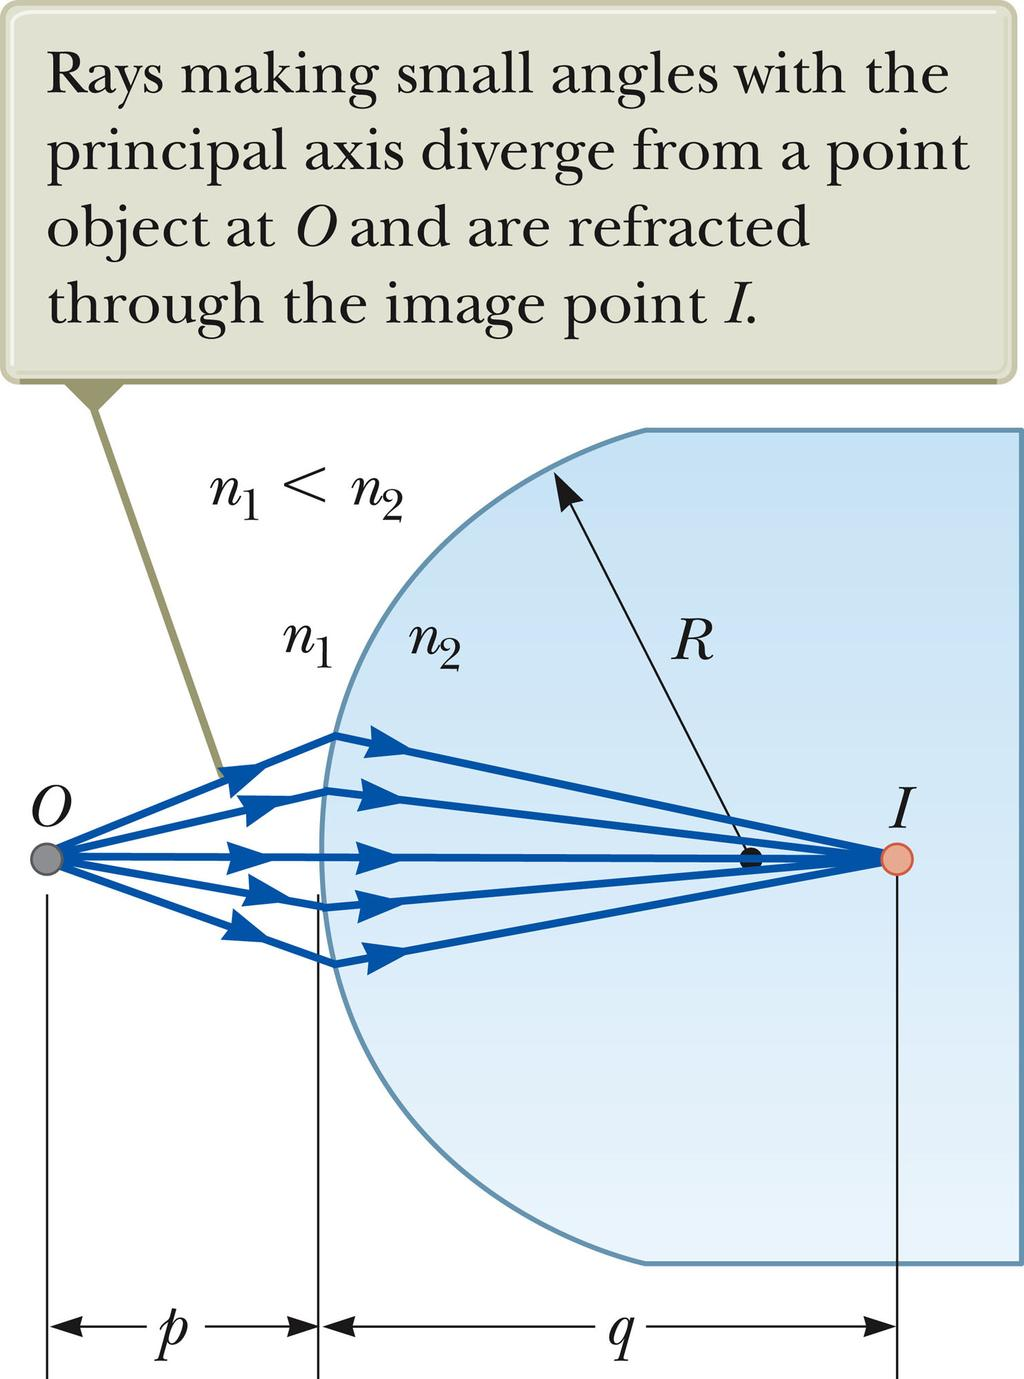 Spherical mirror equation Spherical mirror equation Parallel rays along the optical axis are focused at the focal point, a distance f from the mirror. The focal length of a spherical mirror is f= R/2.